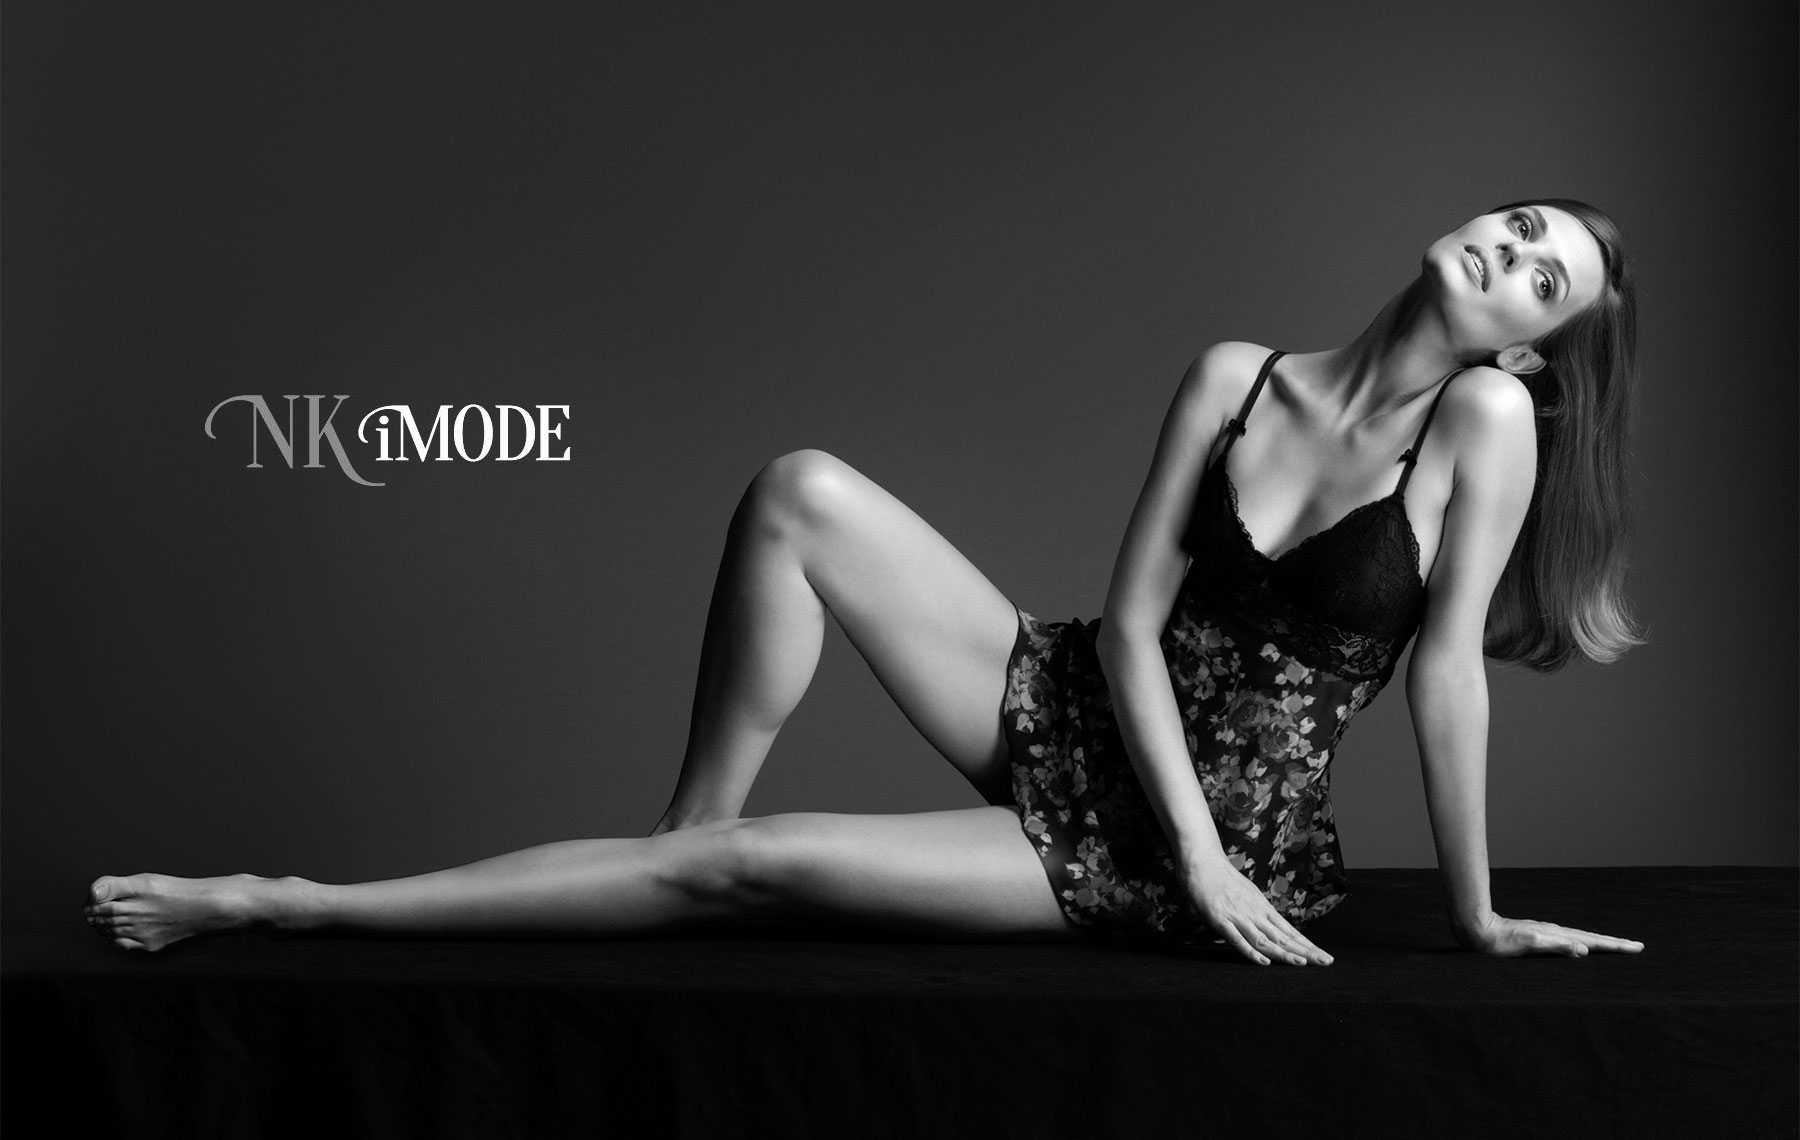 David_Fierro_Fashion_Photographer_NKiMode_Lingerie_Advertising_7